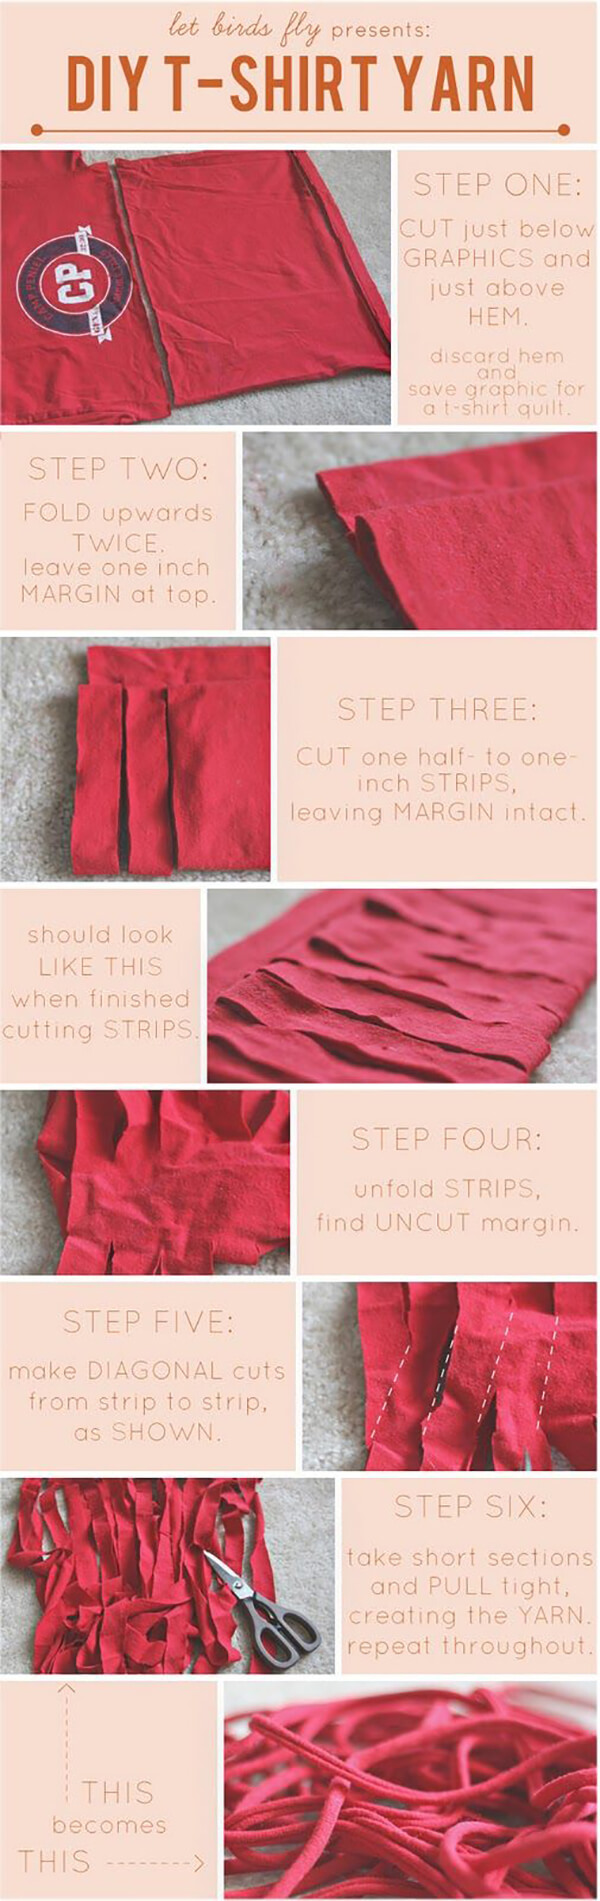 20 Clever Yarn Hacks That Will Make Your Next Project Easier #crochetformoney